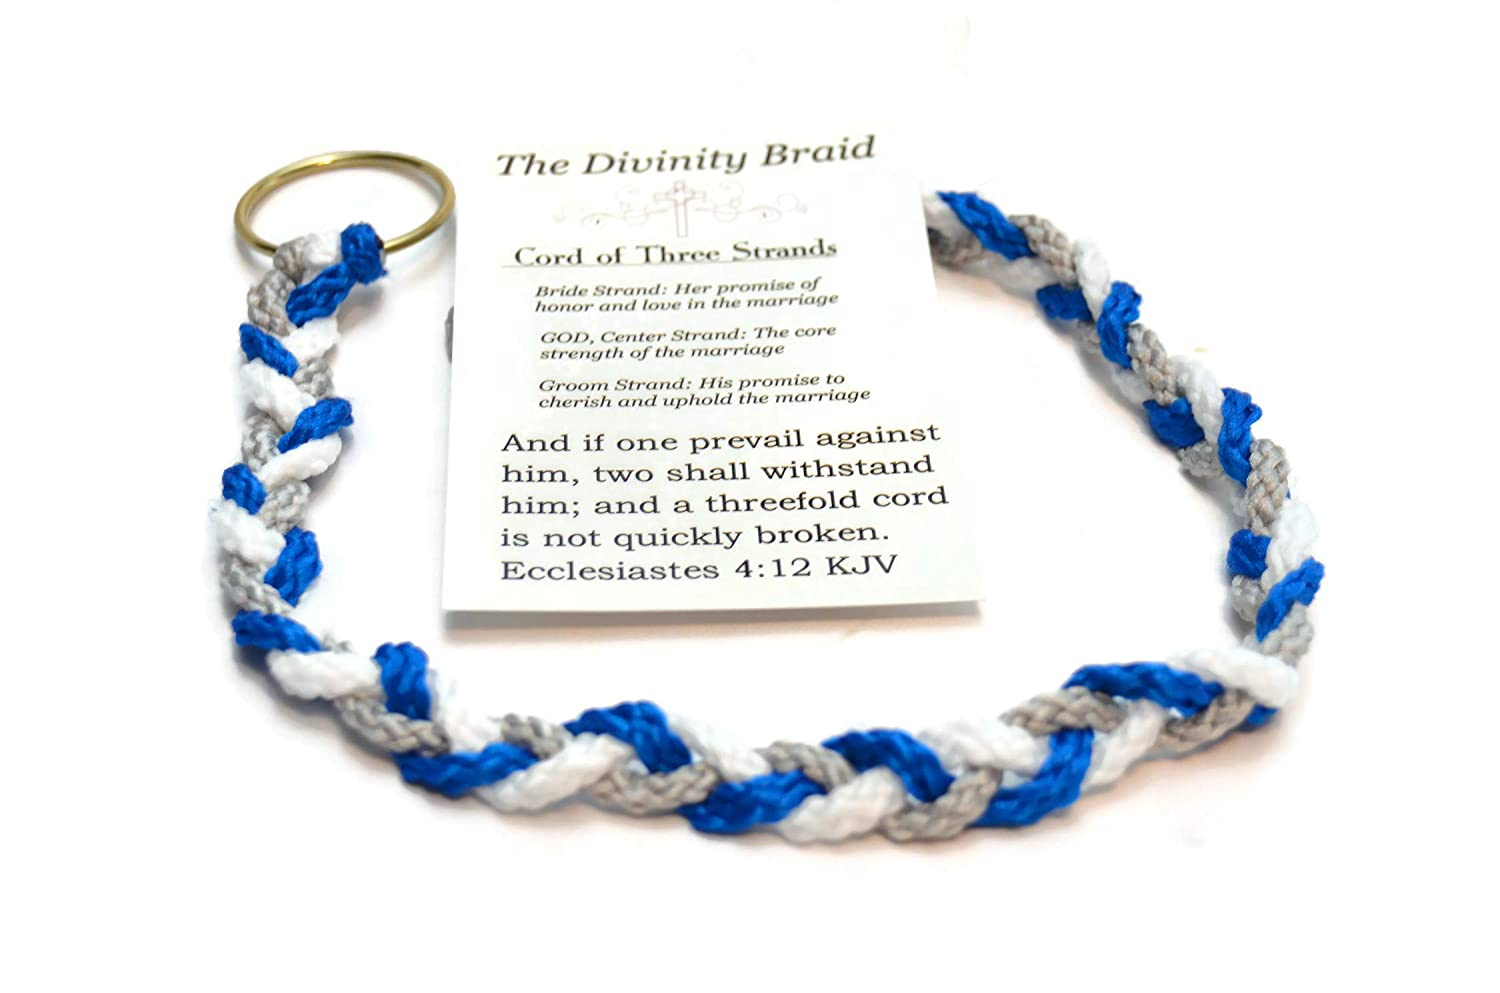 Divinity Braid Cord of Three Strands Royal Theme